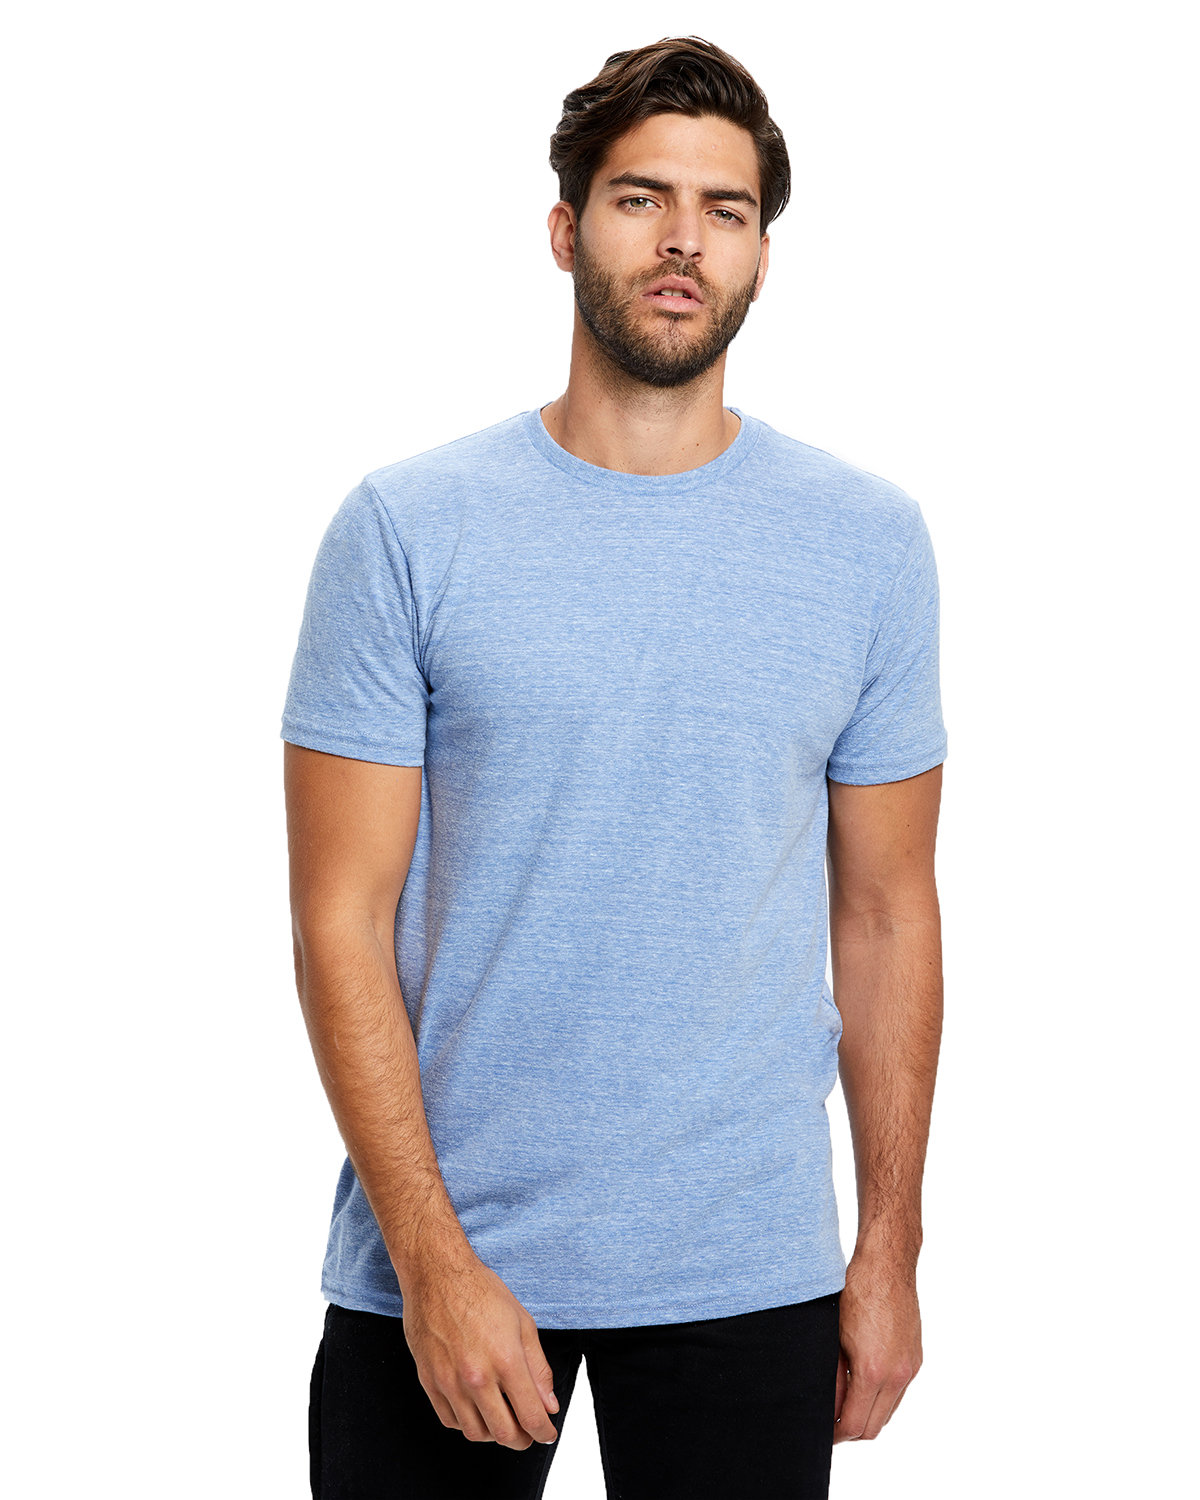 US Blanks Men's Short-Sleeve Made in USA Triblend T-Shirt TRI BLUE